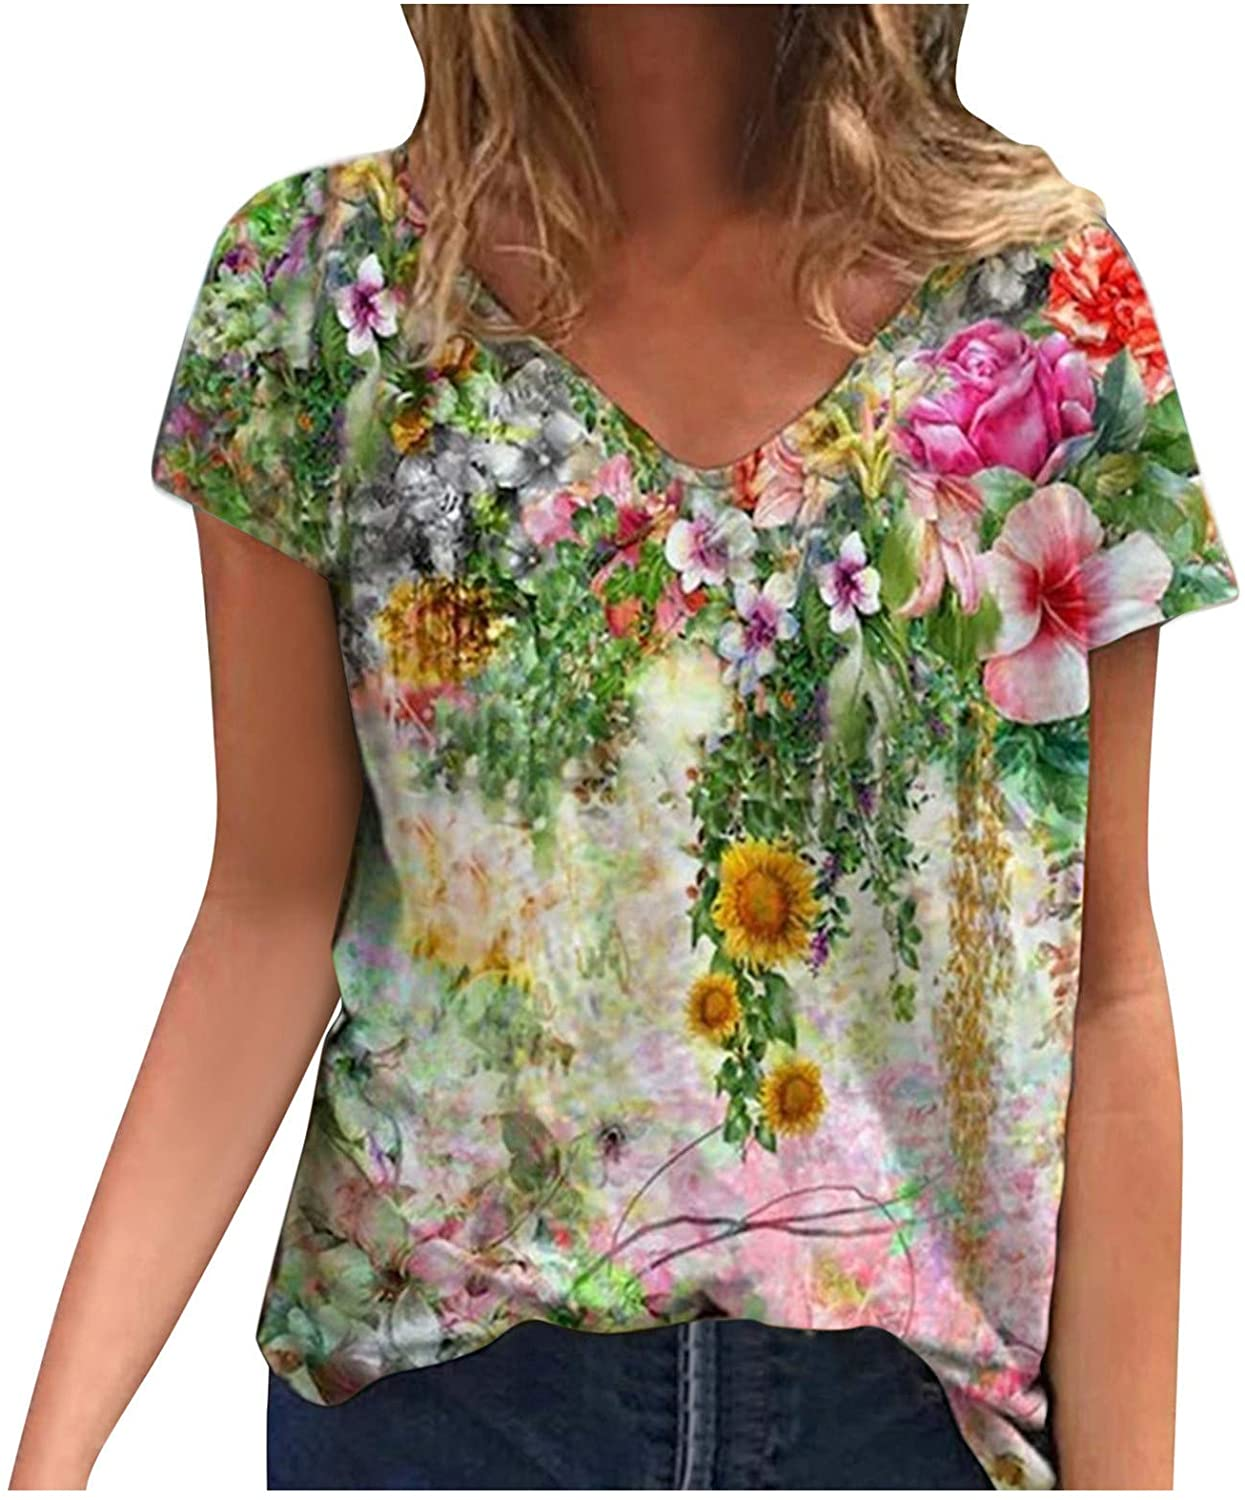 FABIURT Women Short Sleeve Tops,Womens Vintage Floral Printed Round Neck T Shirts Summer Casual Loose Blouse Tunic Tops